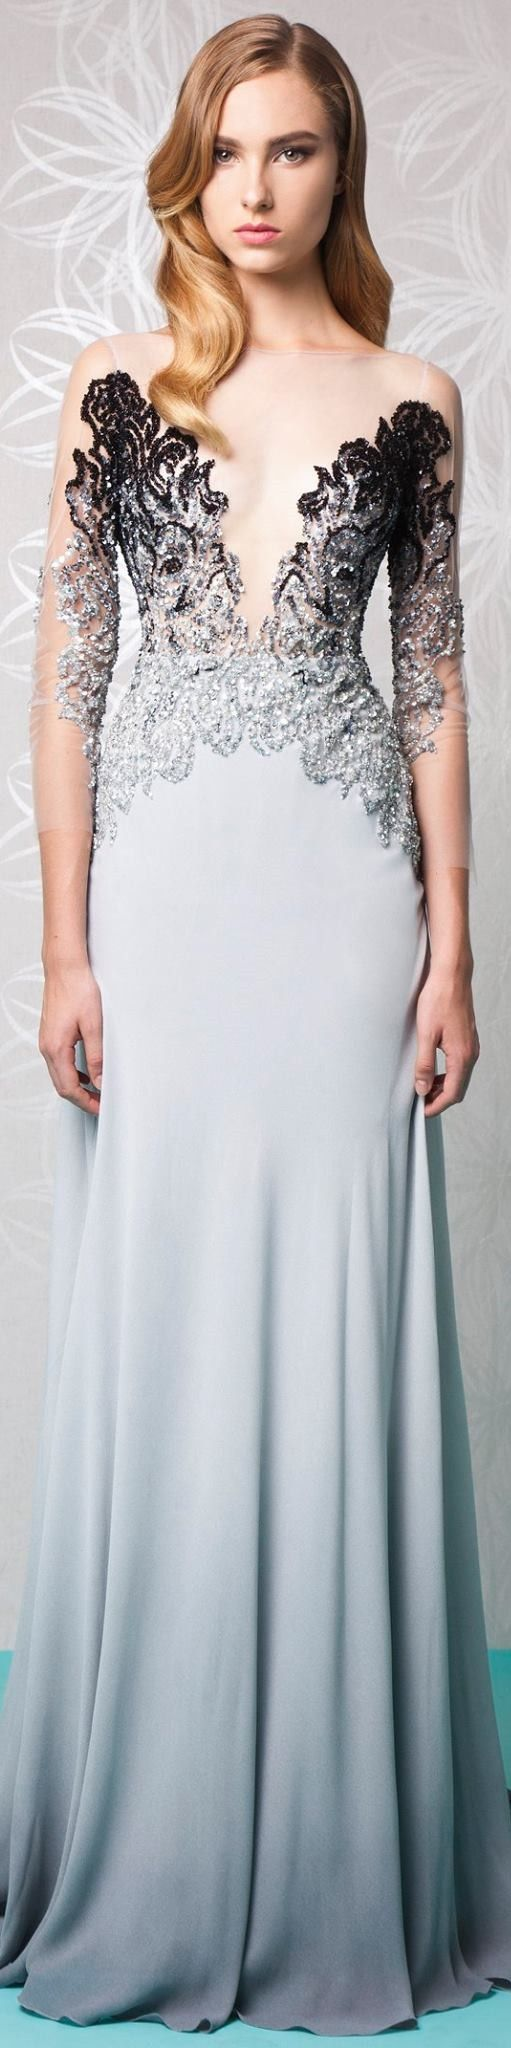 Tony Ward RTW SS 2016 ♡Pinterest: yarenak67